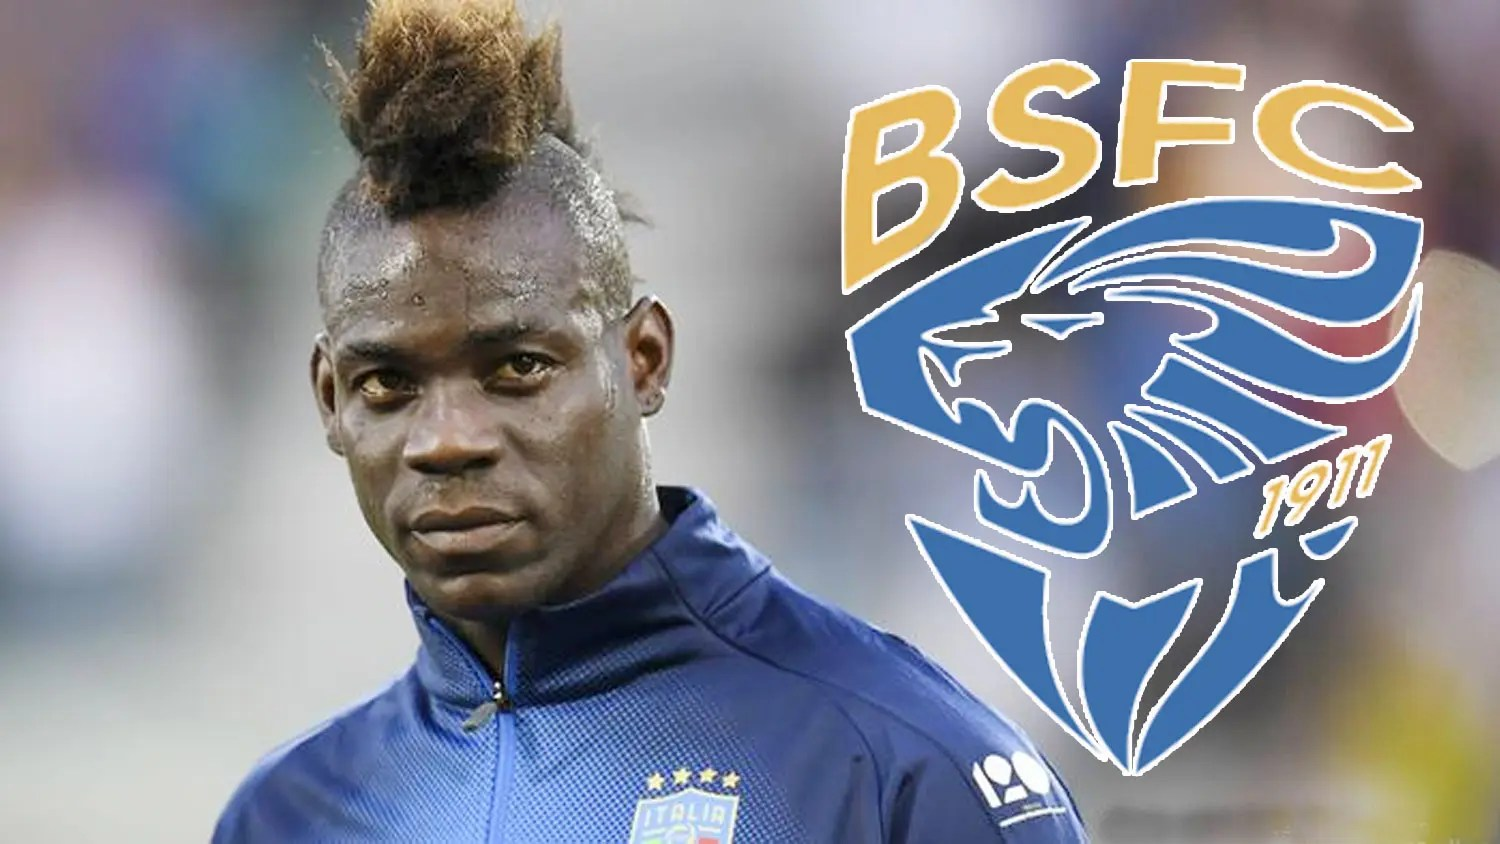 Transfer: Balotelli's new club confirmed